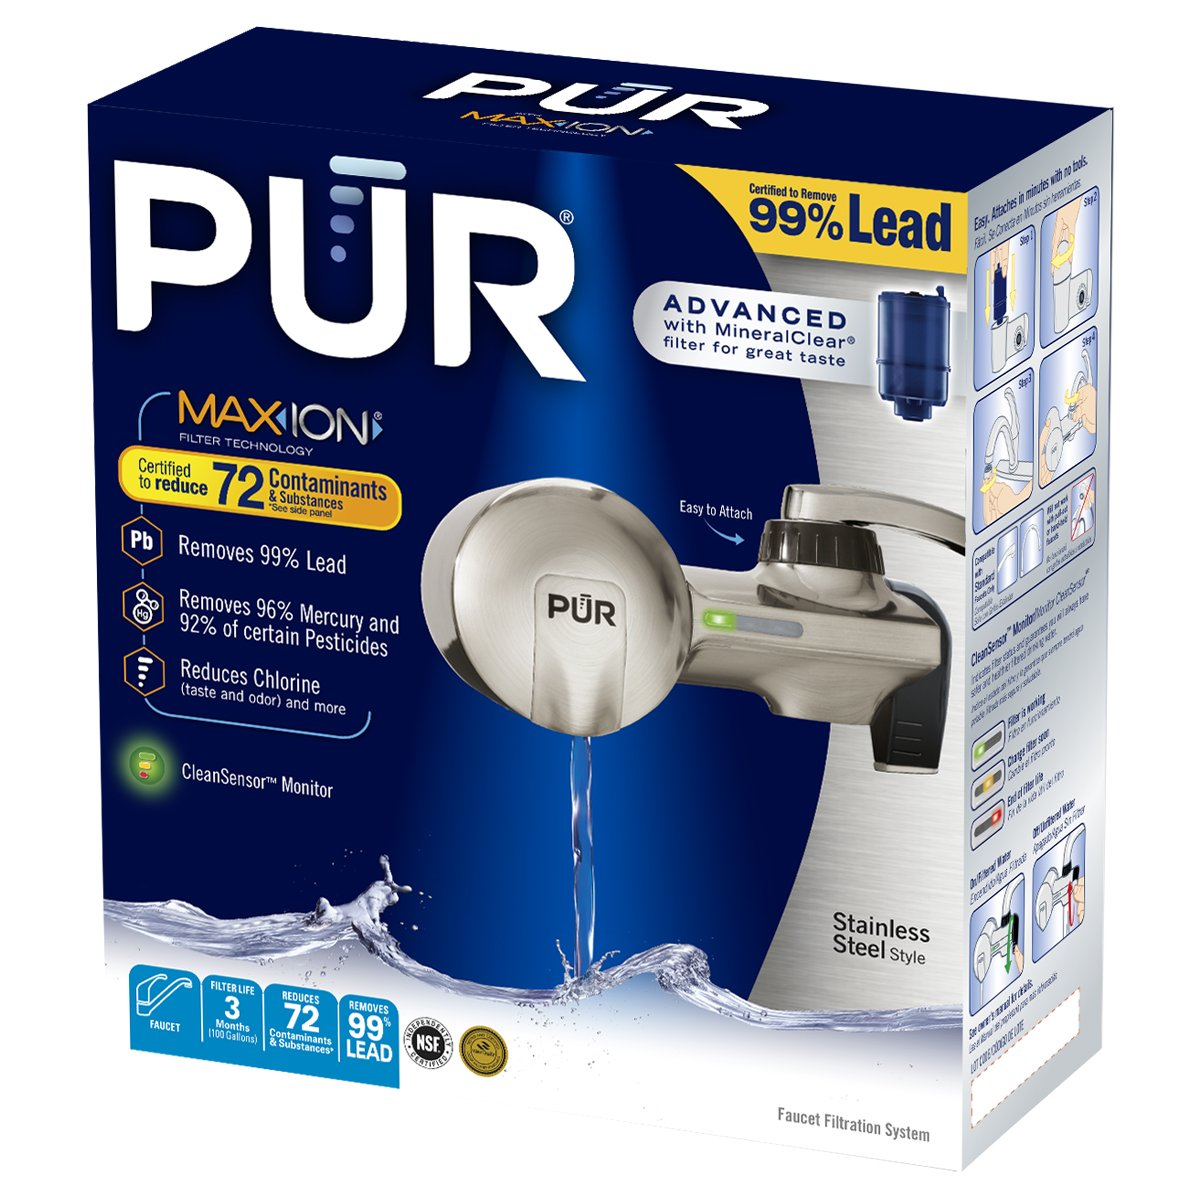 PUR PFM450S Stainless Steel Style Horizontal FM with1 MineralClear Filter